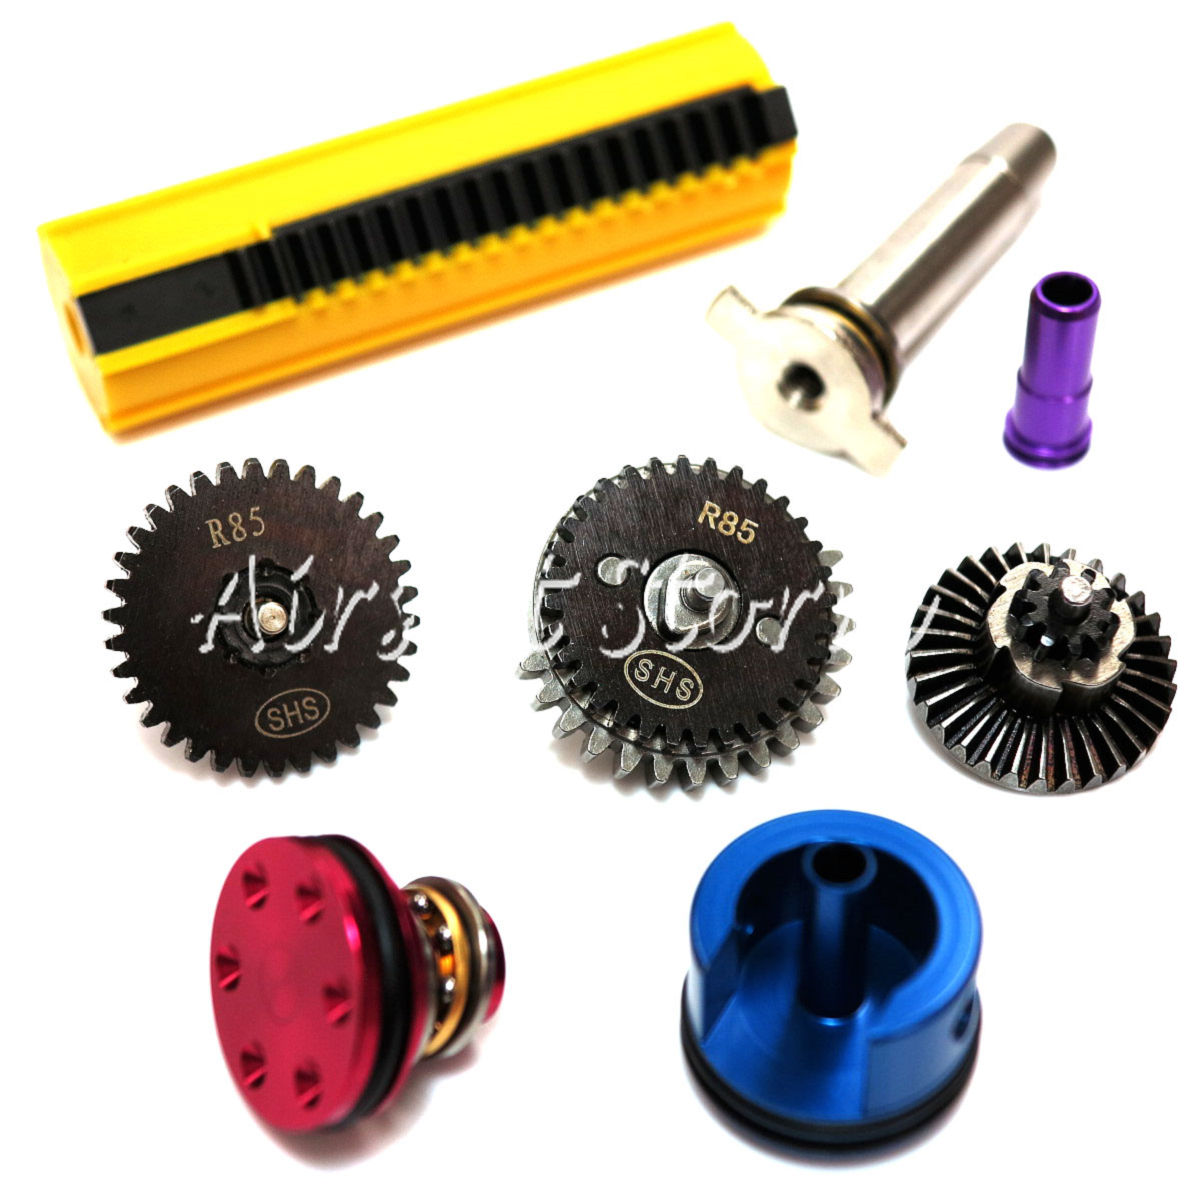 Shooting Gear SHS R85 High Speed Gear Tune-Up Set (15 Full Piston Yellow)